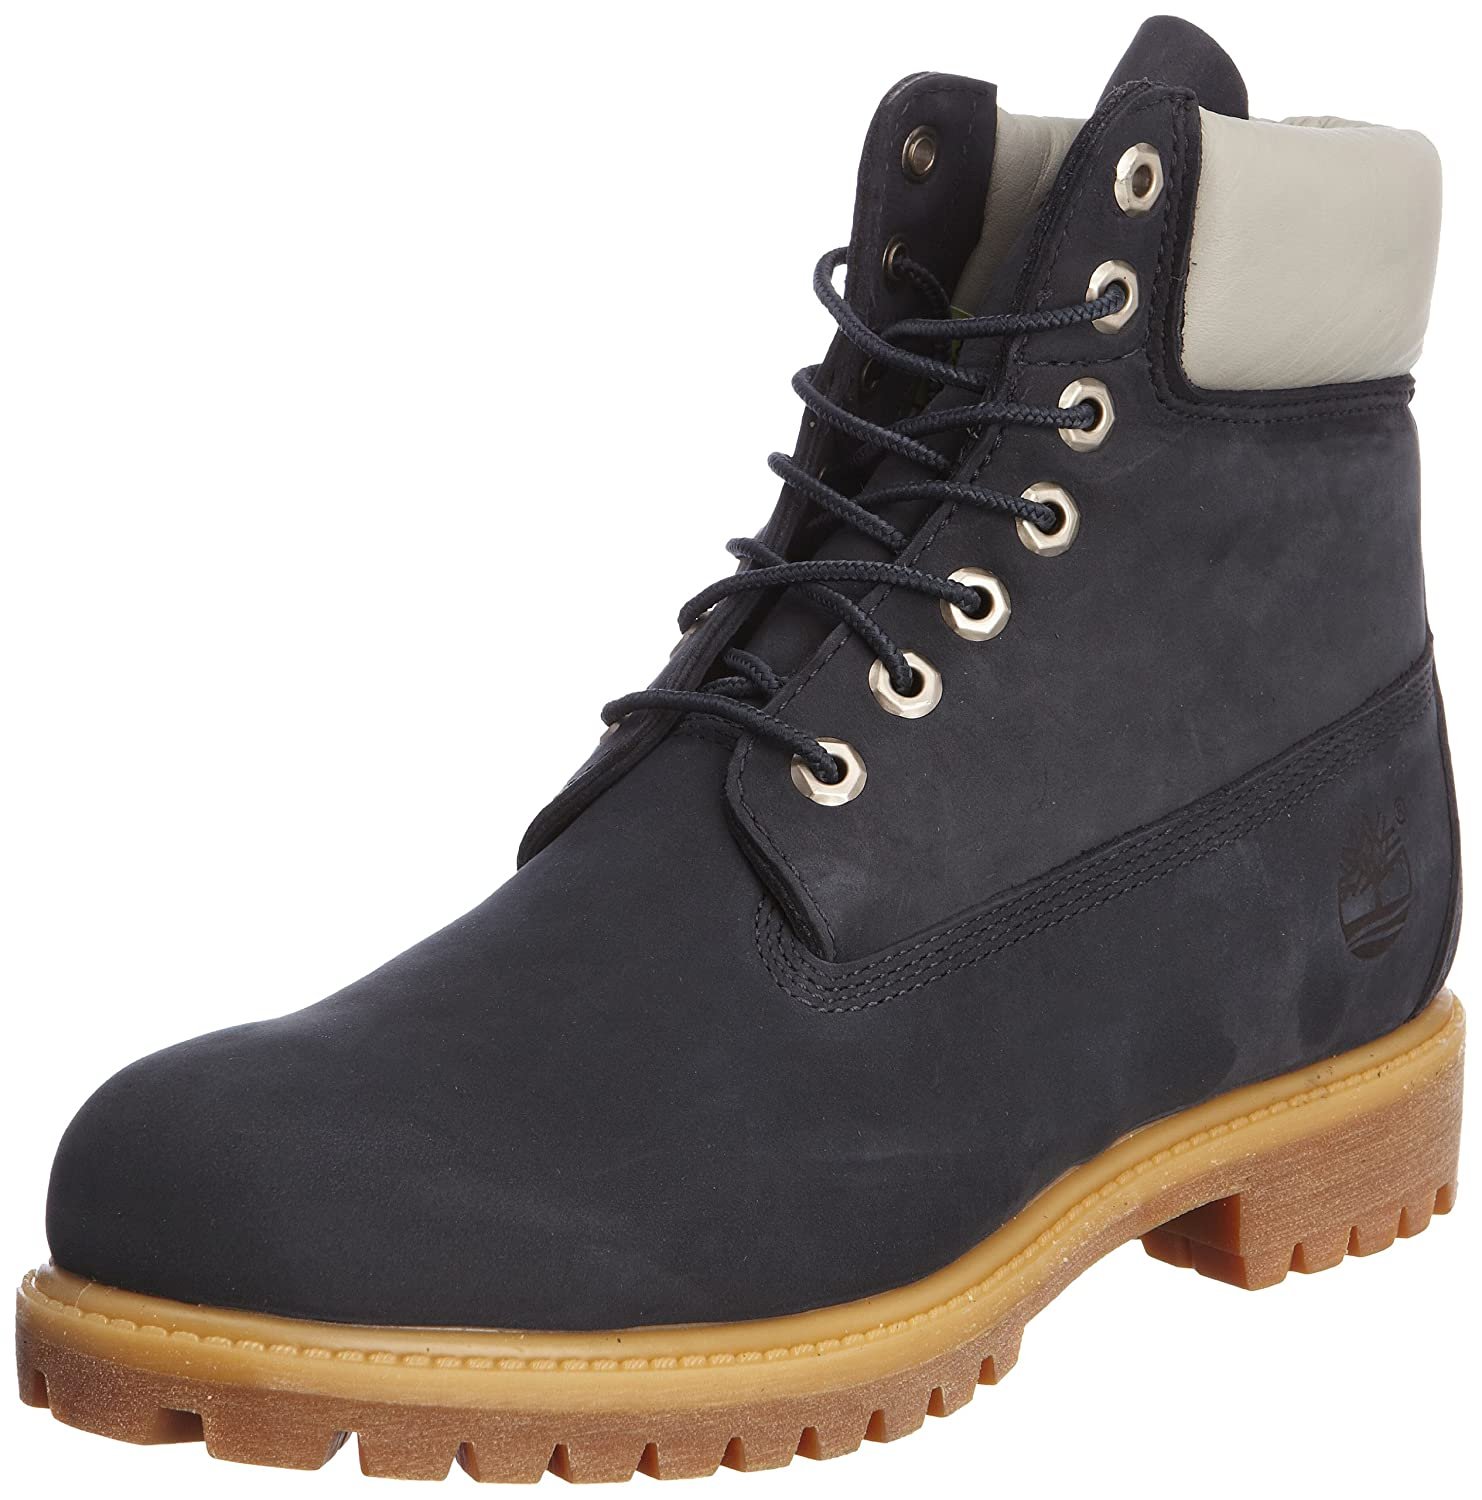 Mens Bottes Timberland Taille 12.5 CgVgl7YY